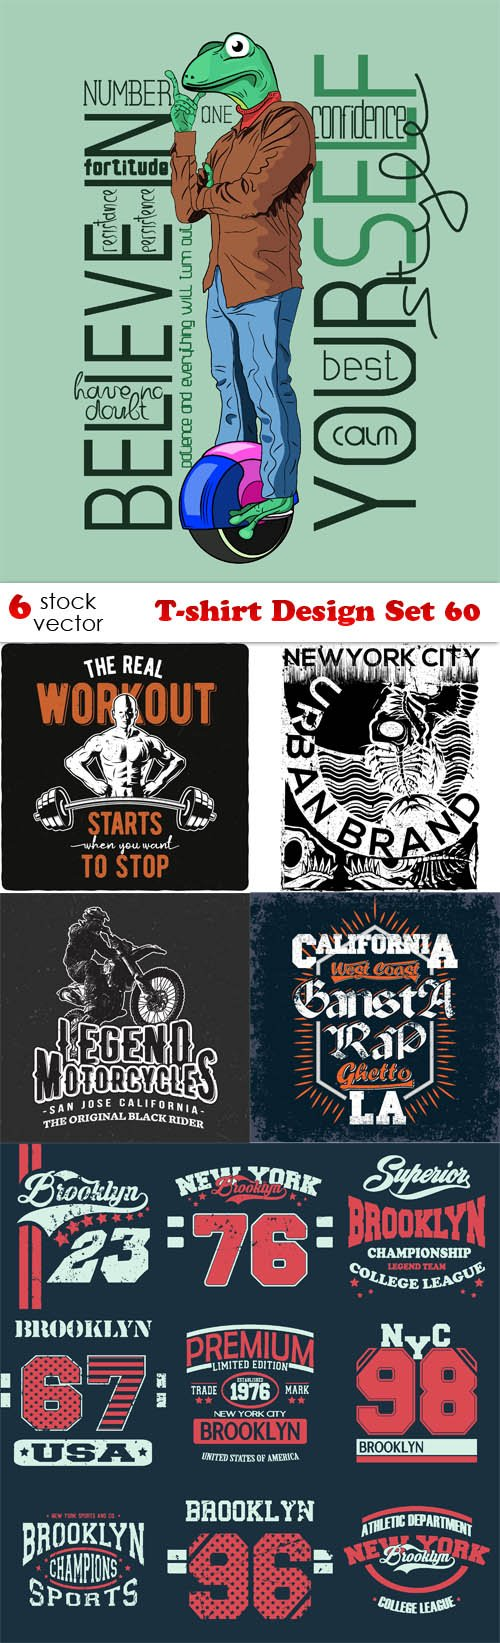 Vectors - T-shirt Design Set 60